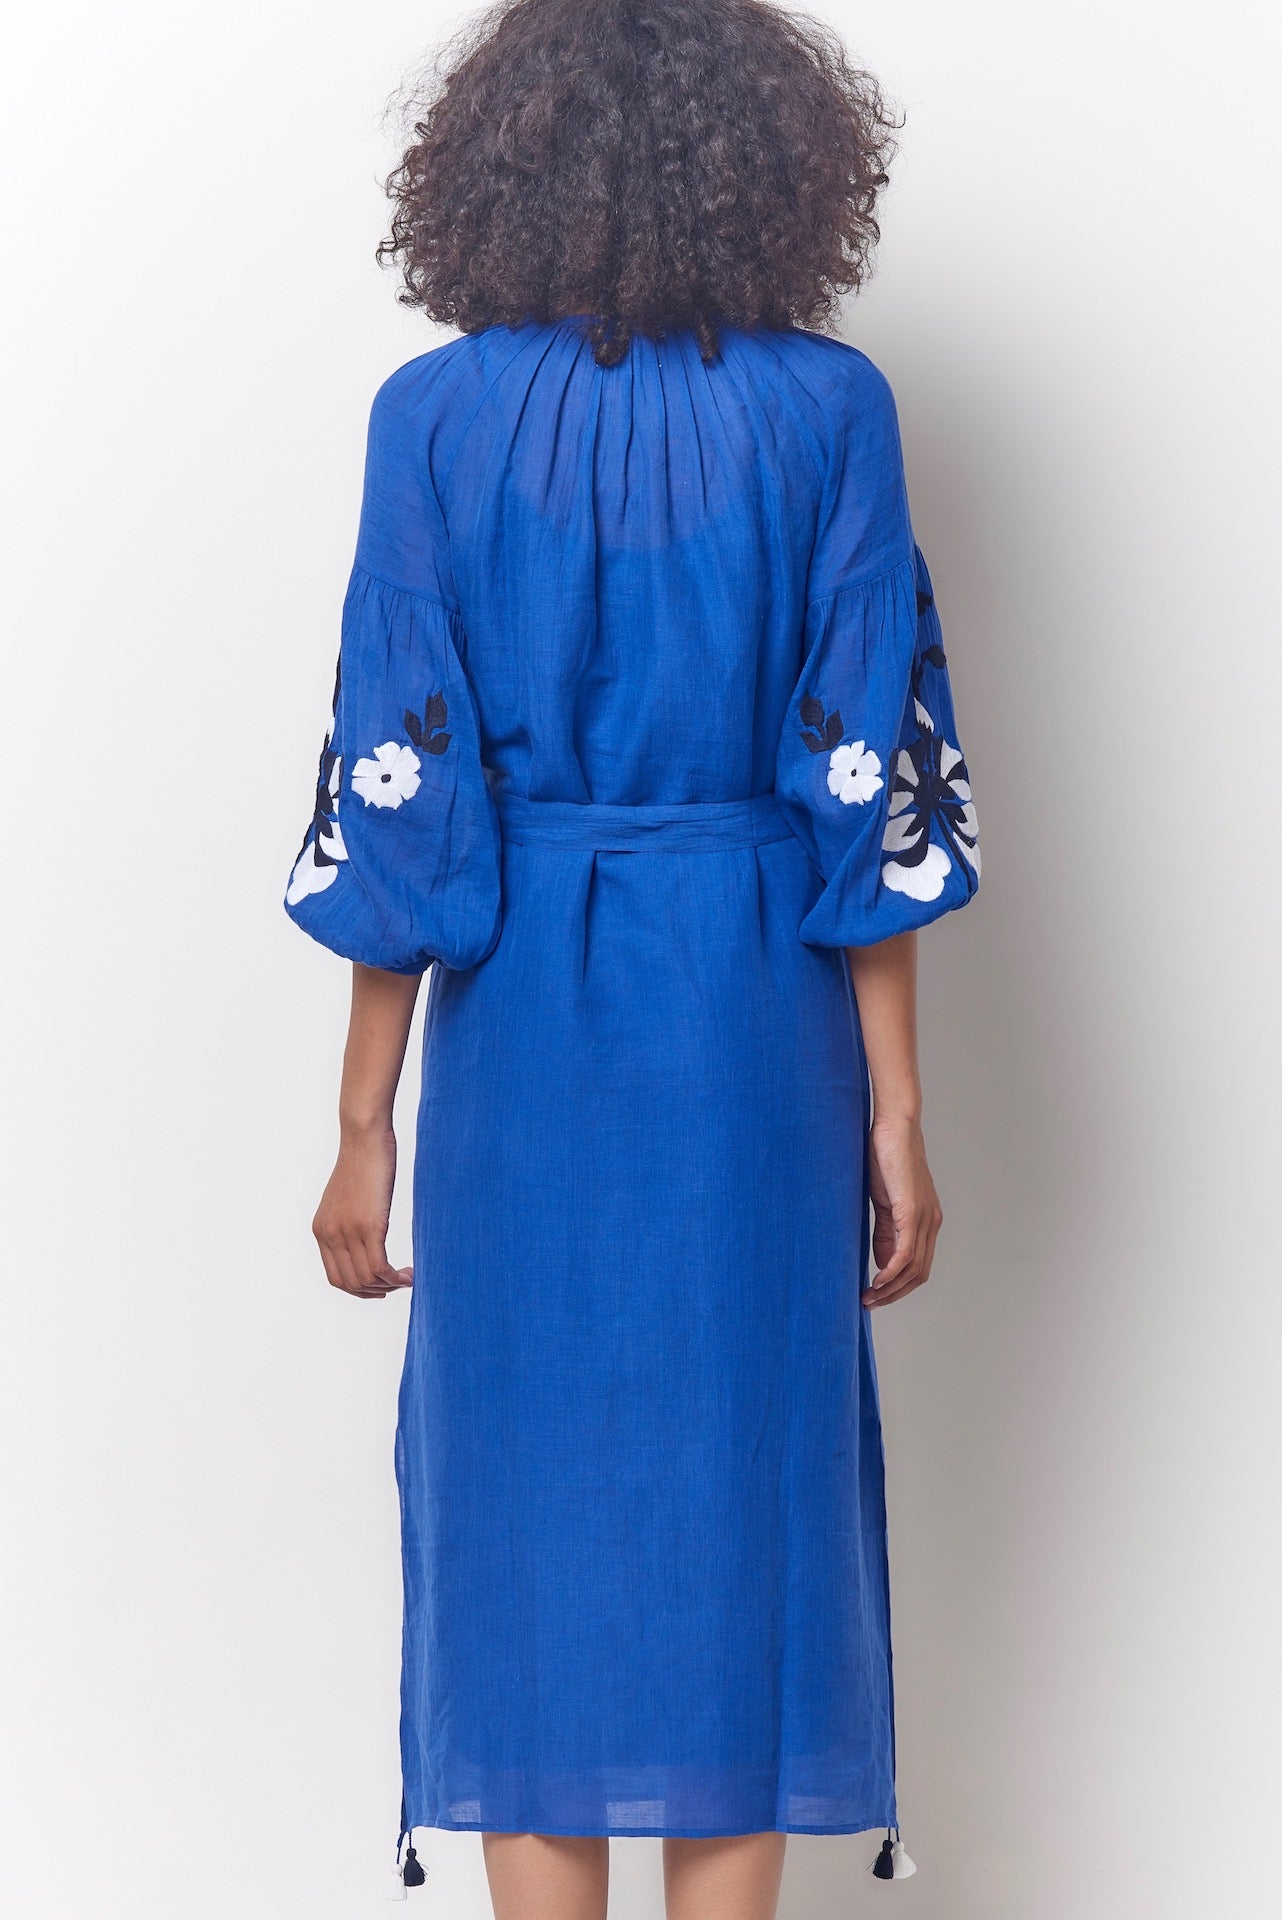 Blue Embroidered Peasant Dress